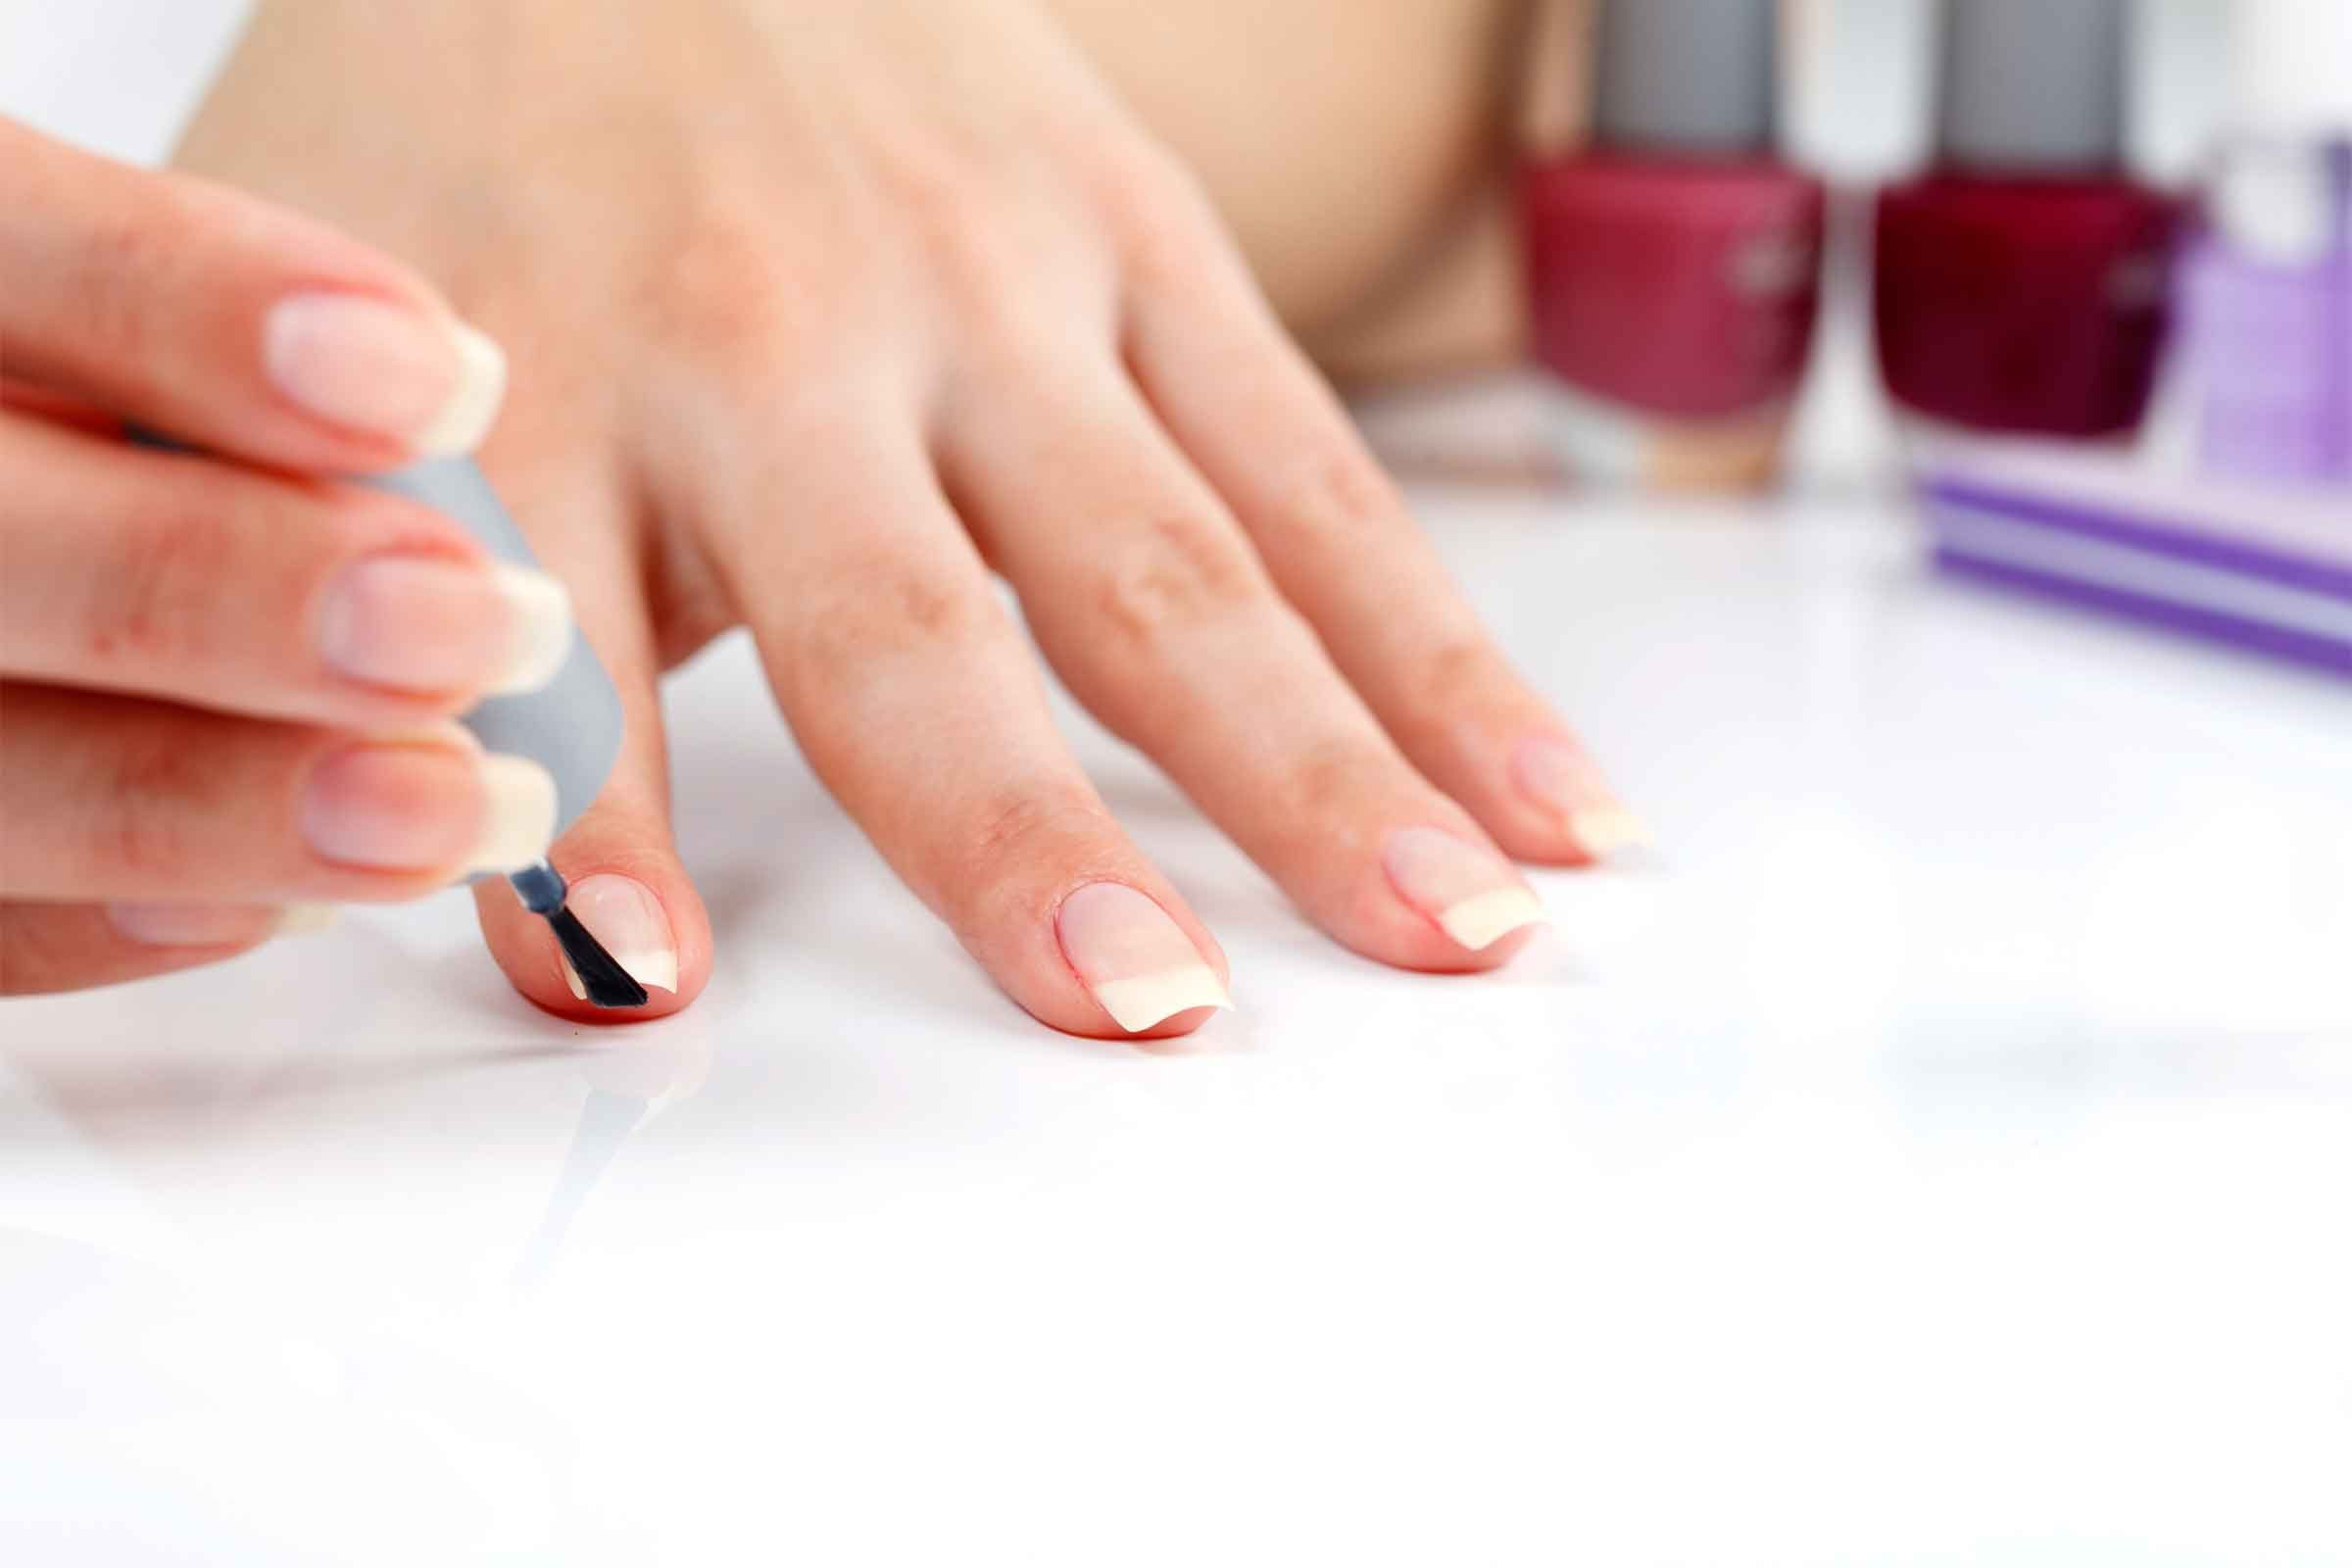 How to make a manicure using a newspaper 6